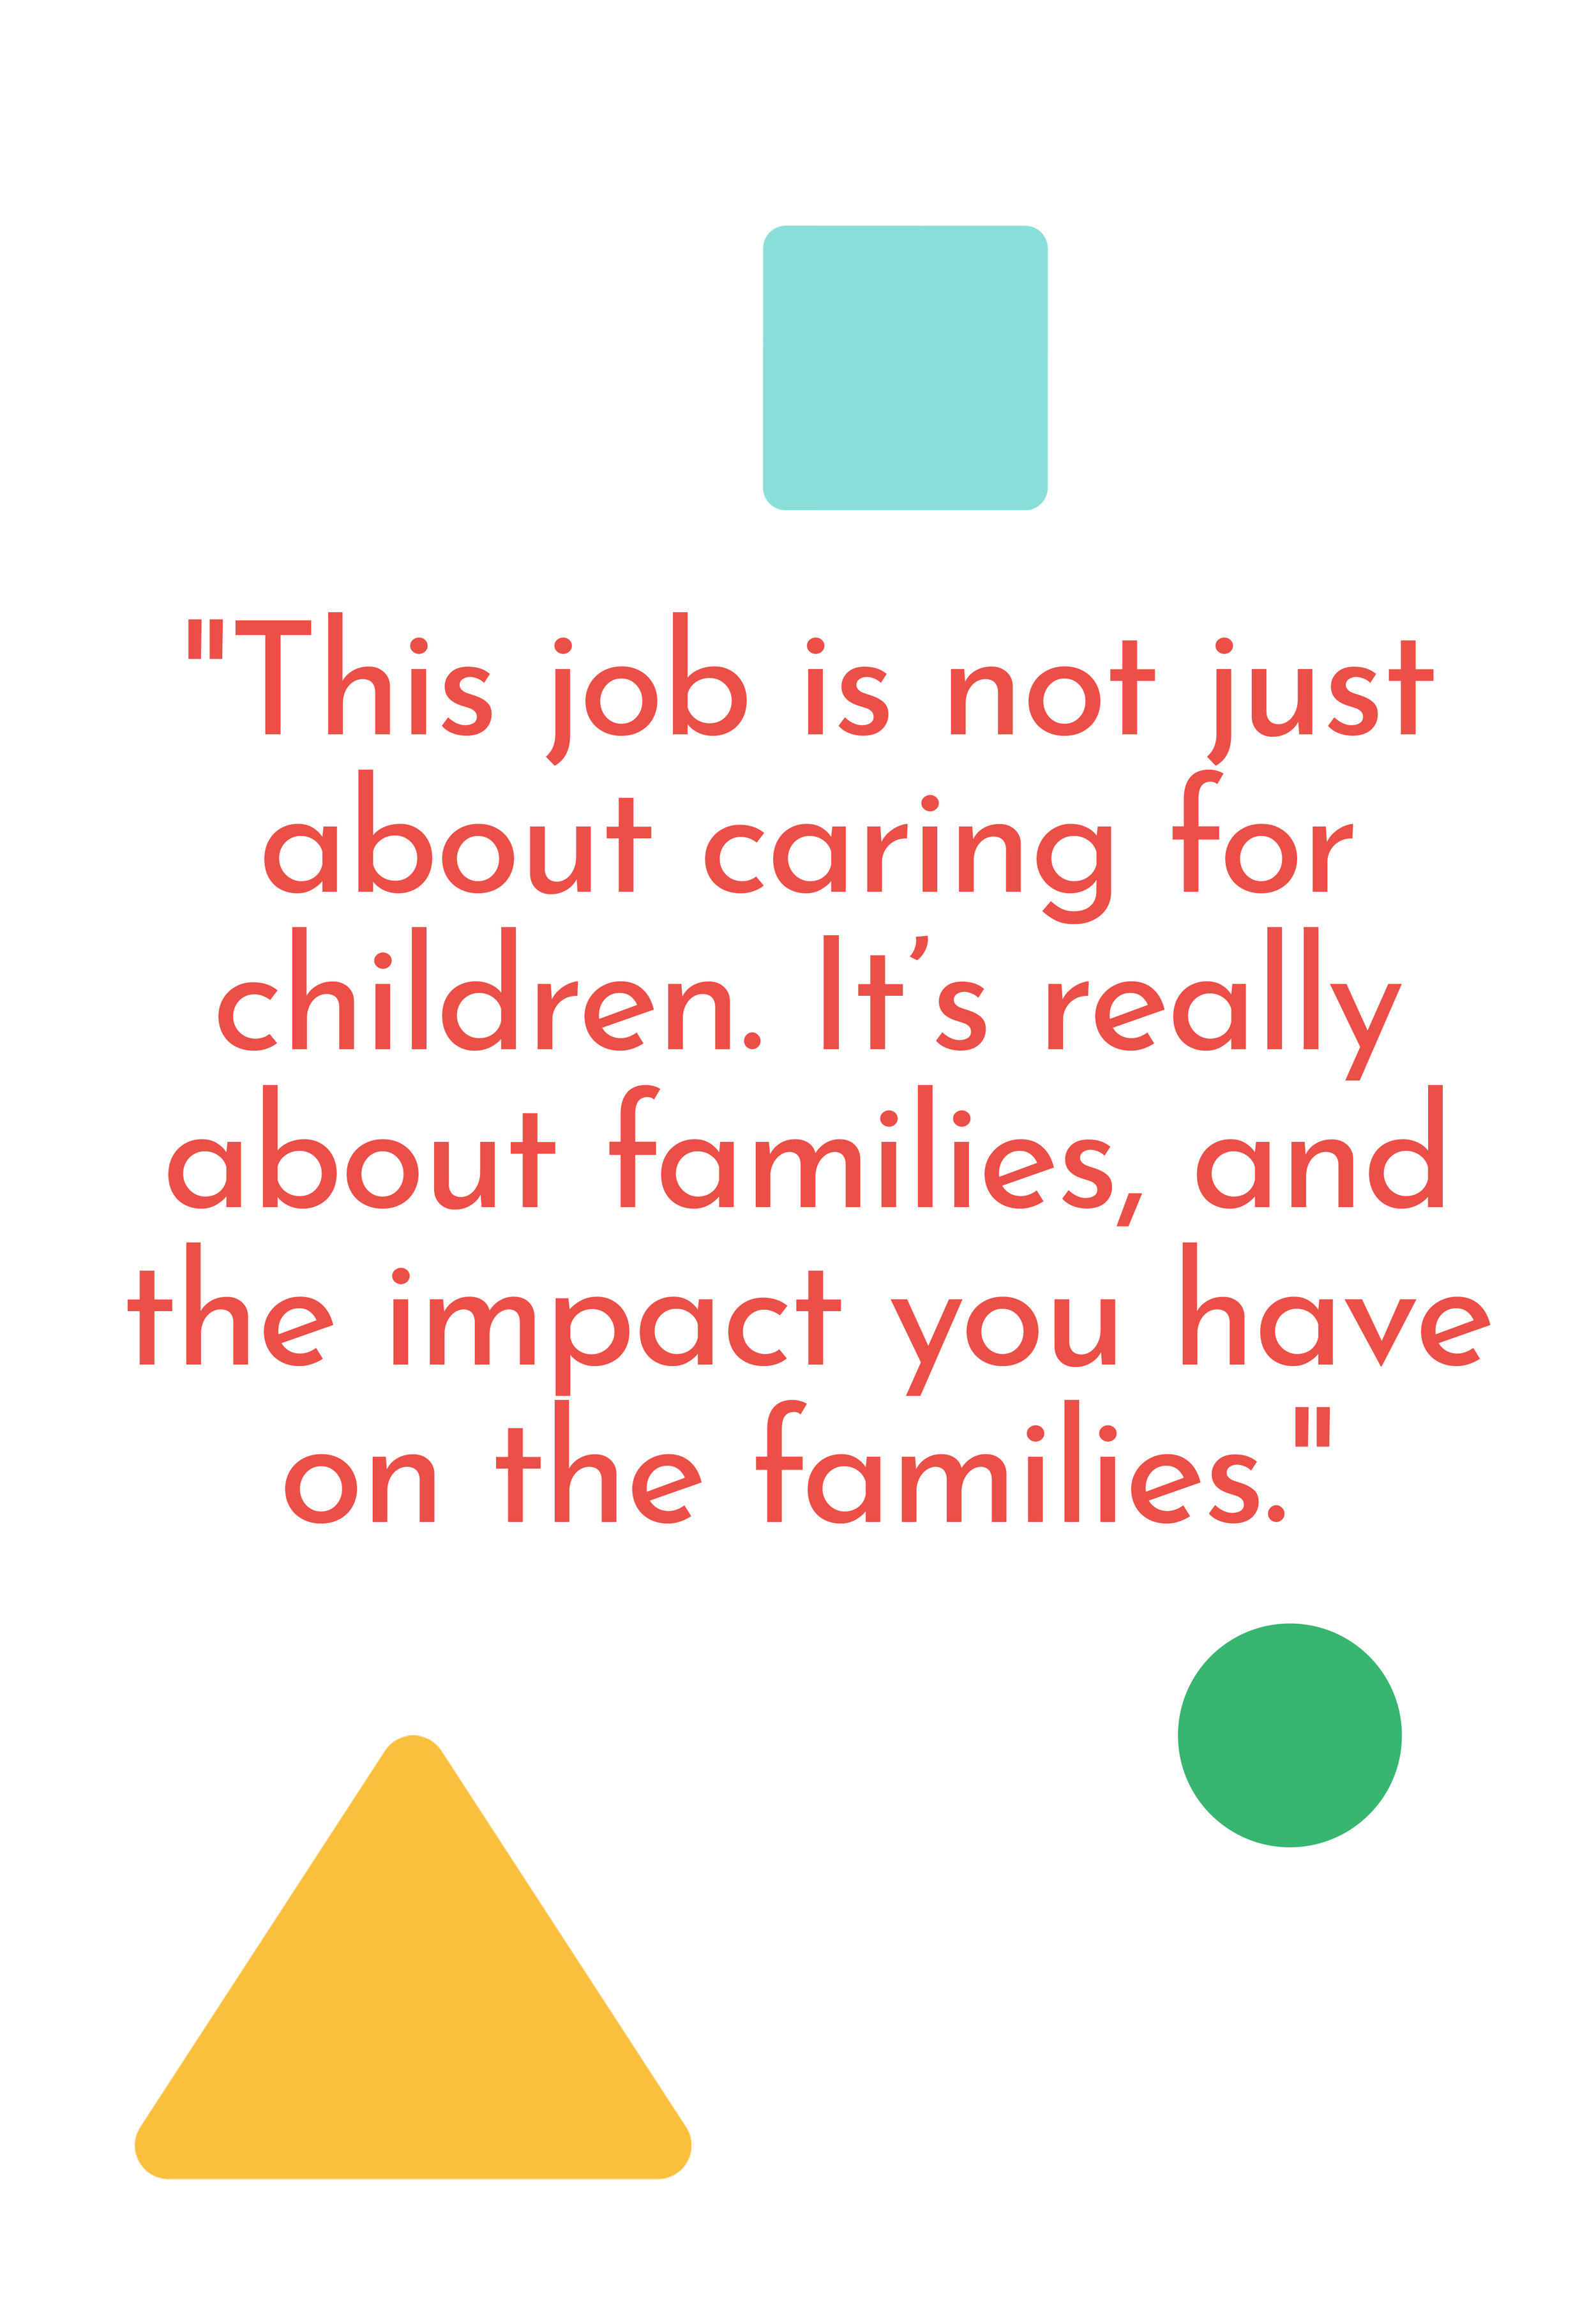 """This job is not just about caring for children. It's really about families, and the impact you have on the families."" says Ms. Dottie running her daycare in Dorchester, MA."